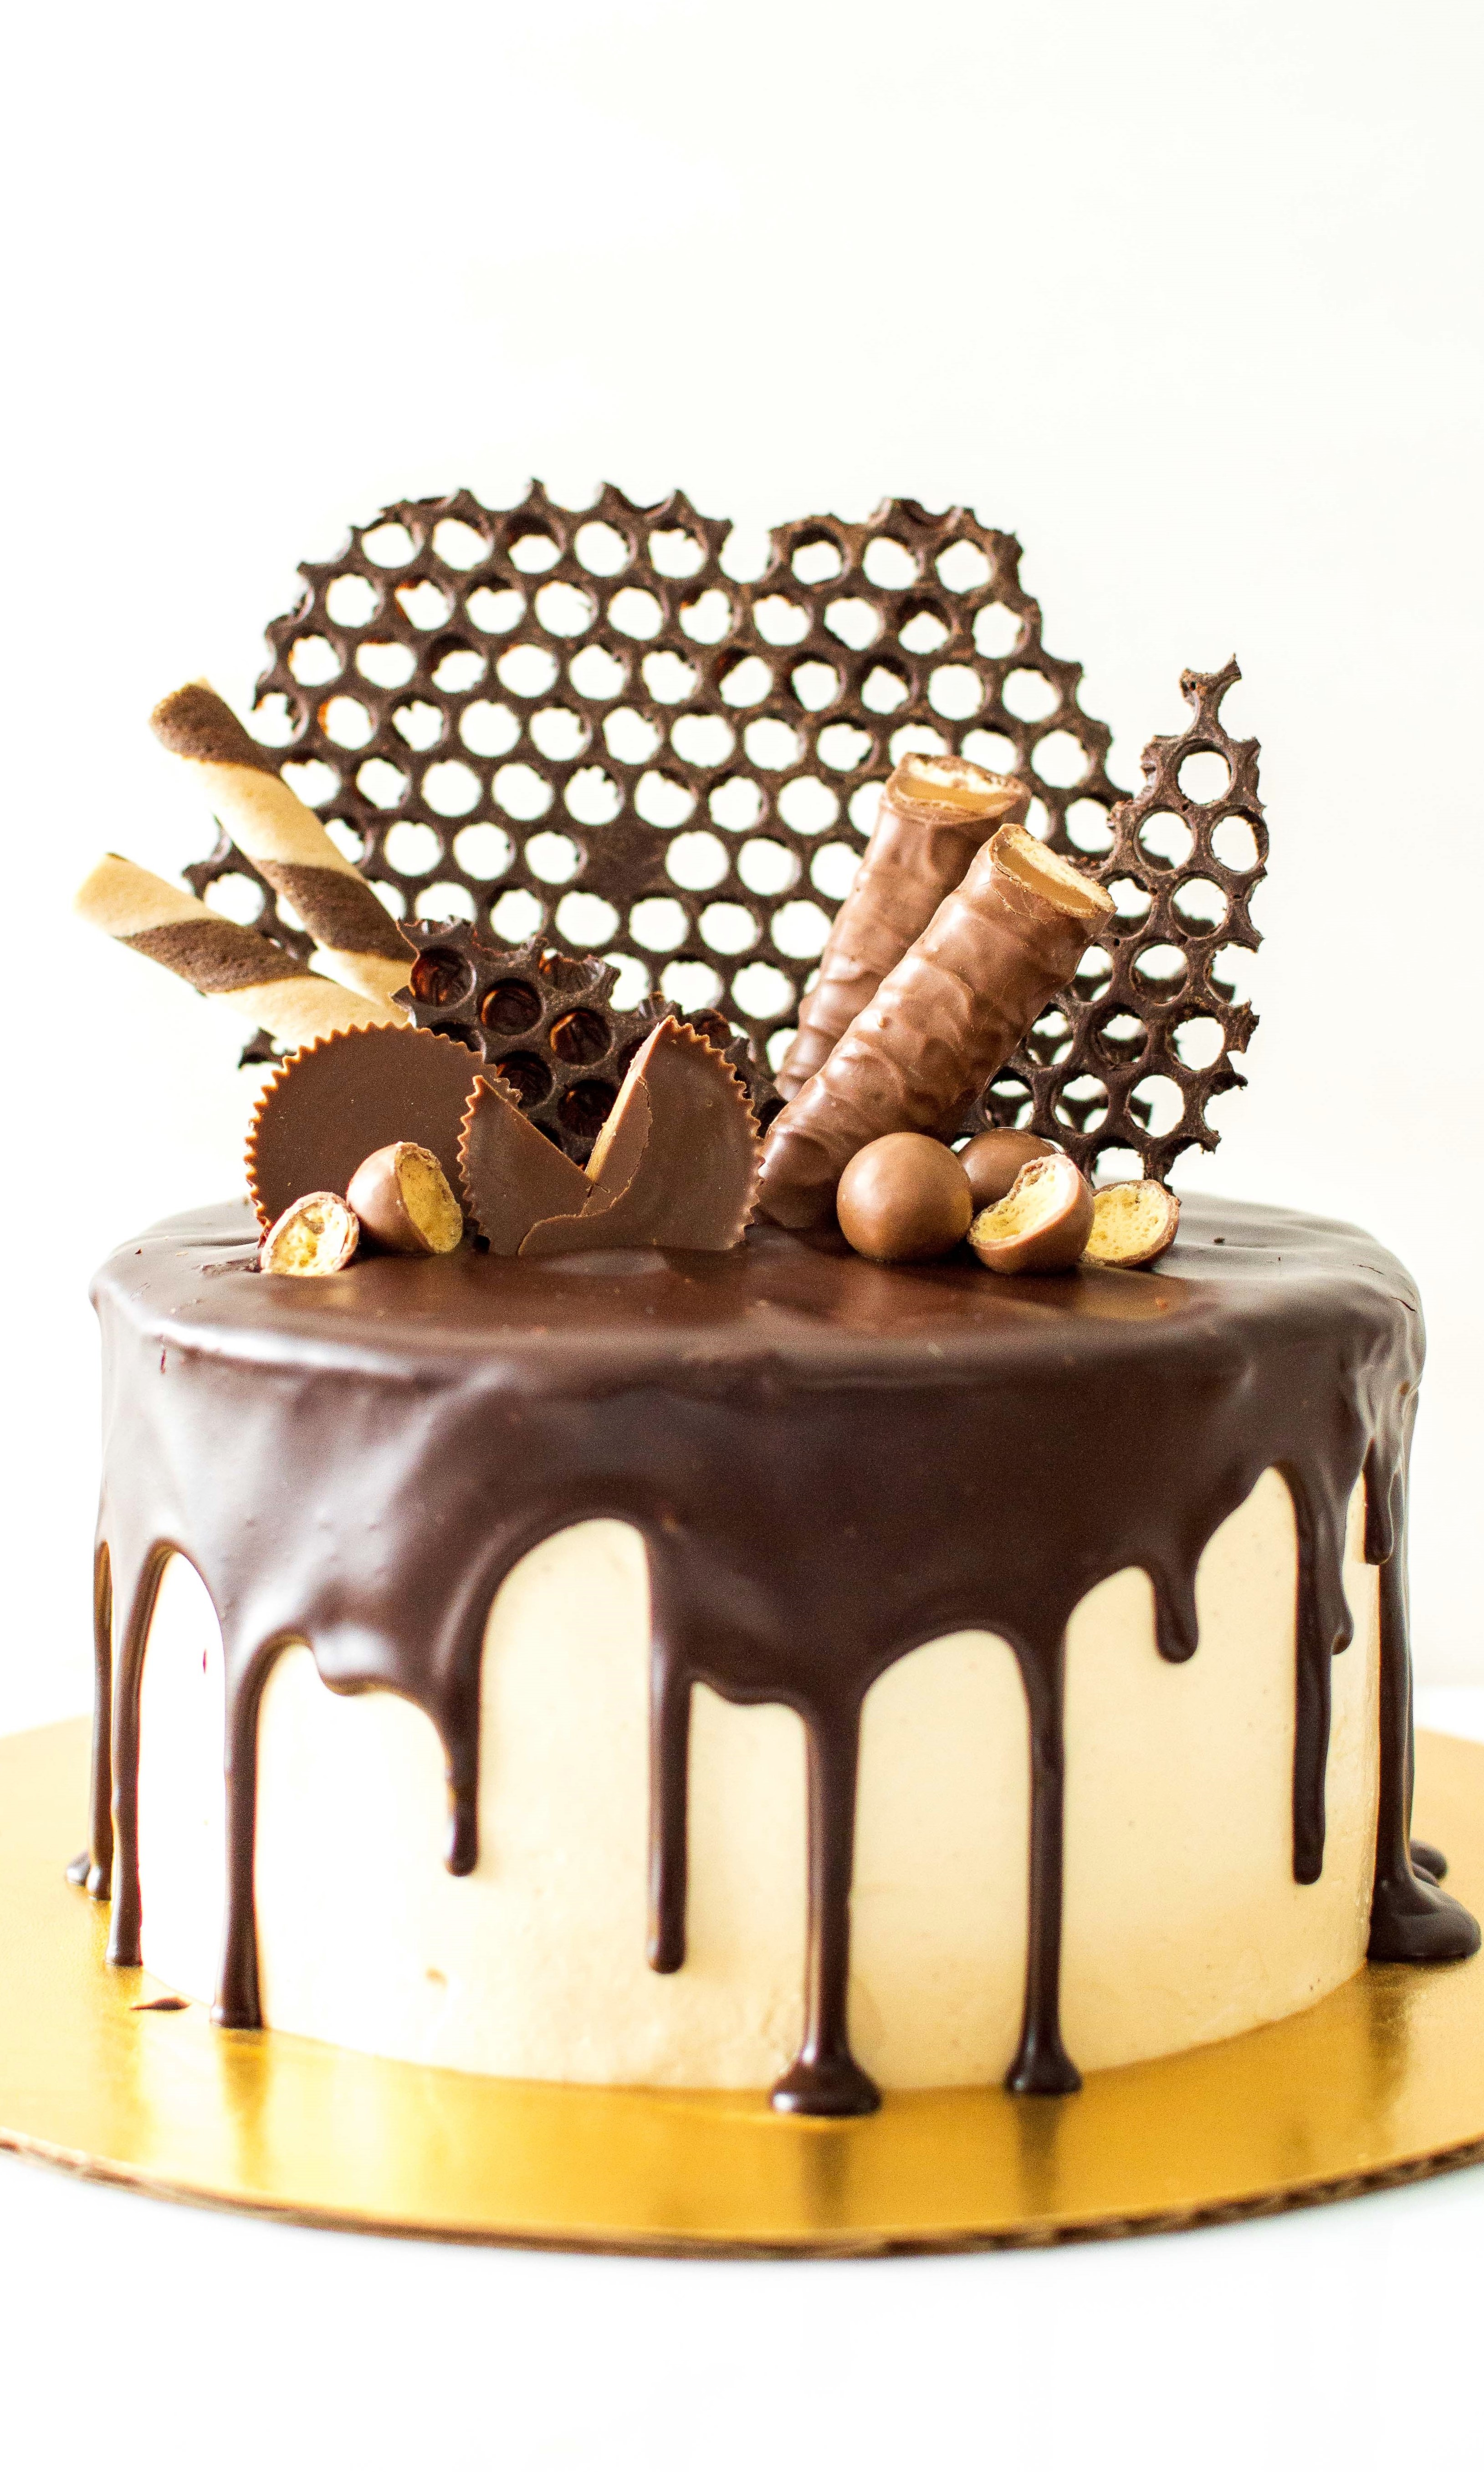 Pleasing Reese Peanut Butter Chocolate Spread Cake Chocolate Connie Funny Birthday Cards Online Fluifree Goldxyz